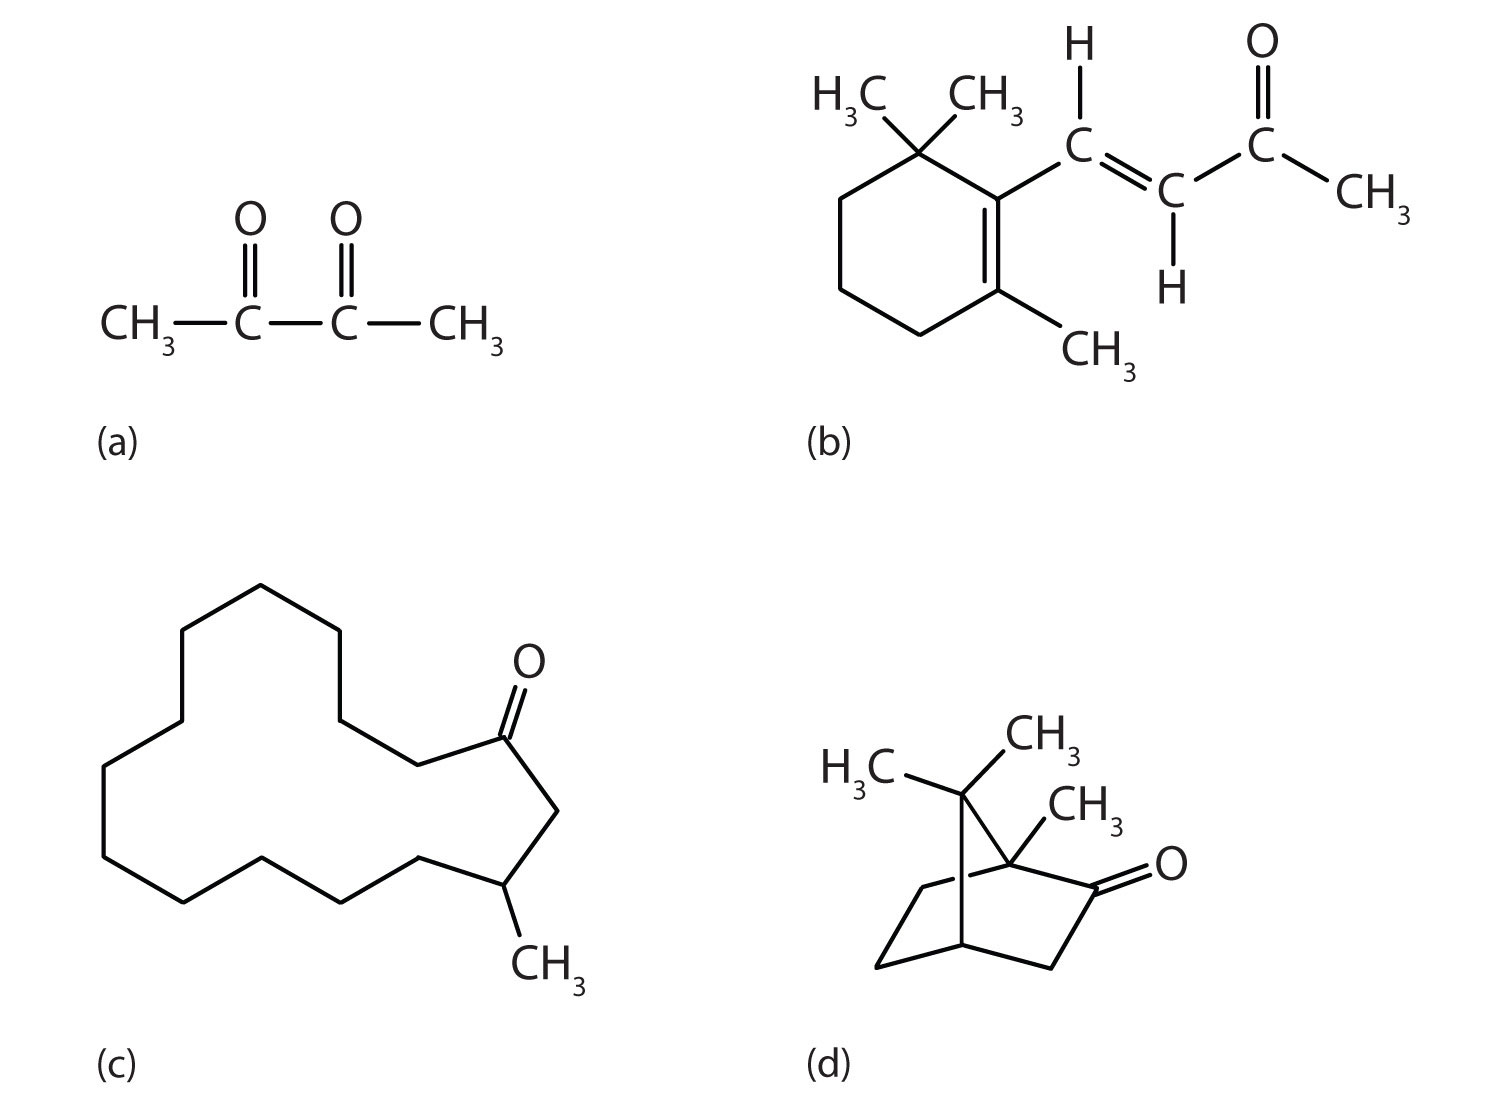 Examples of organic compounds with ketone structure.